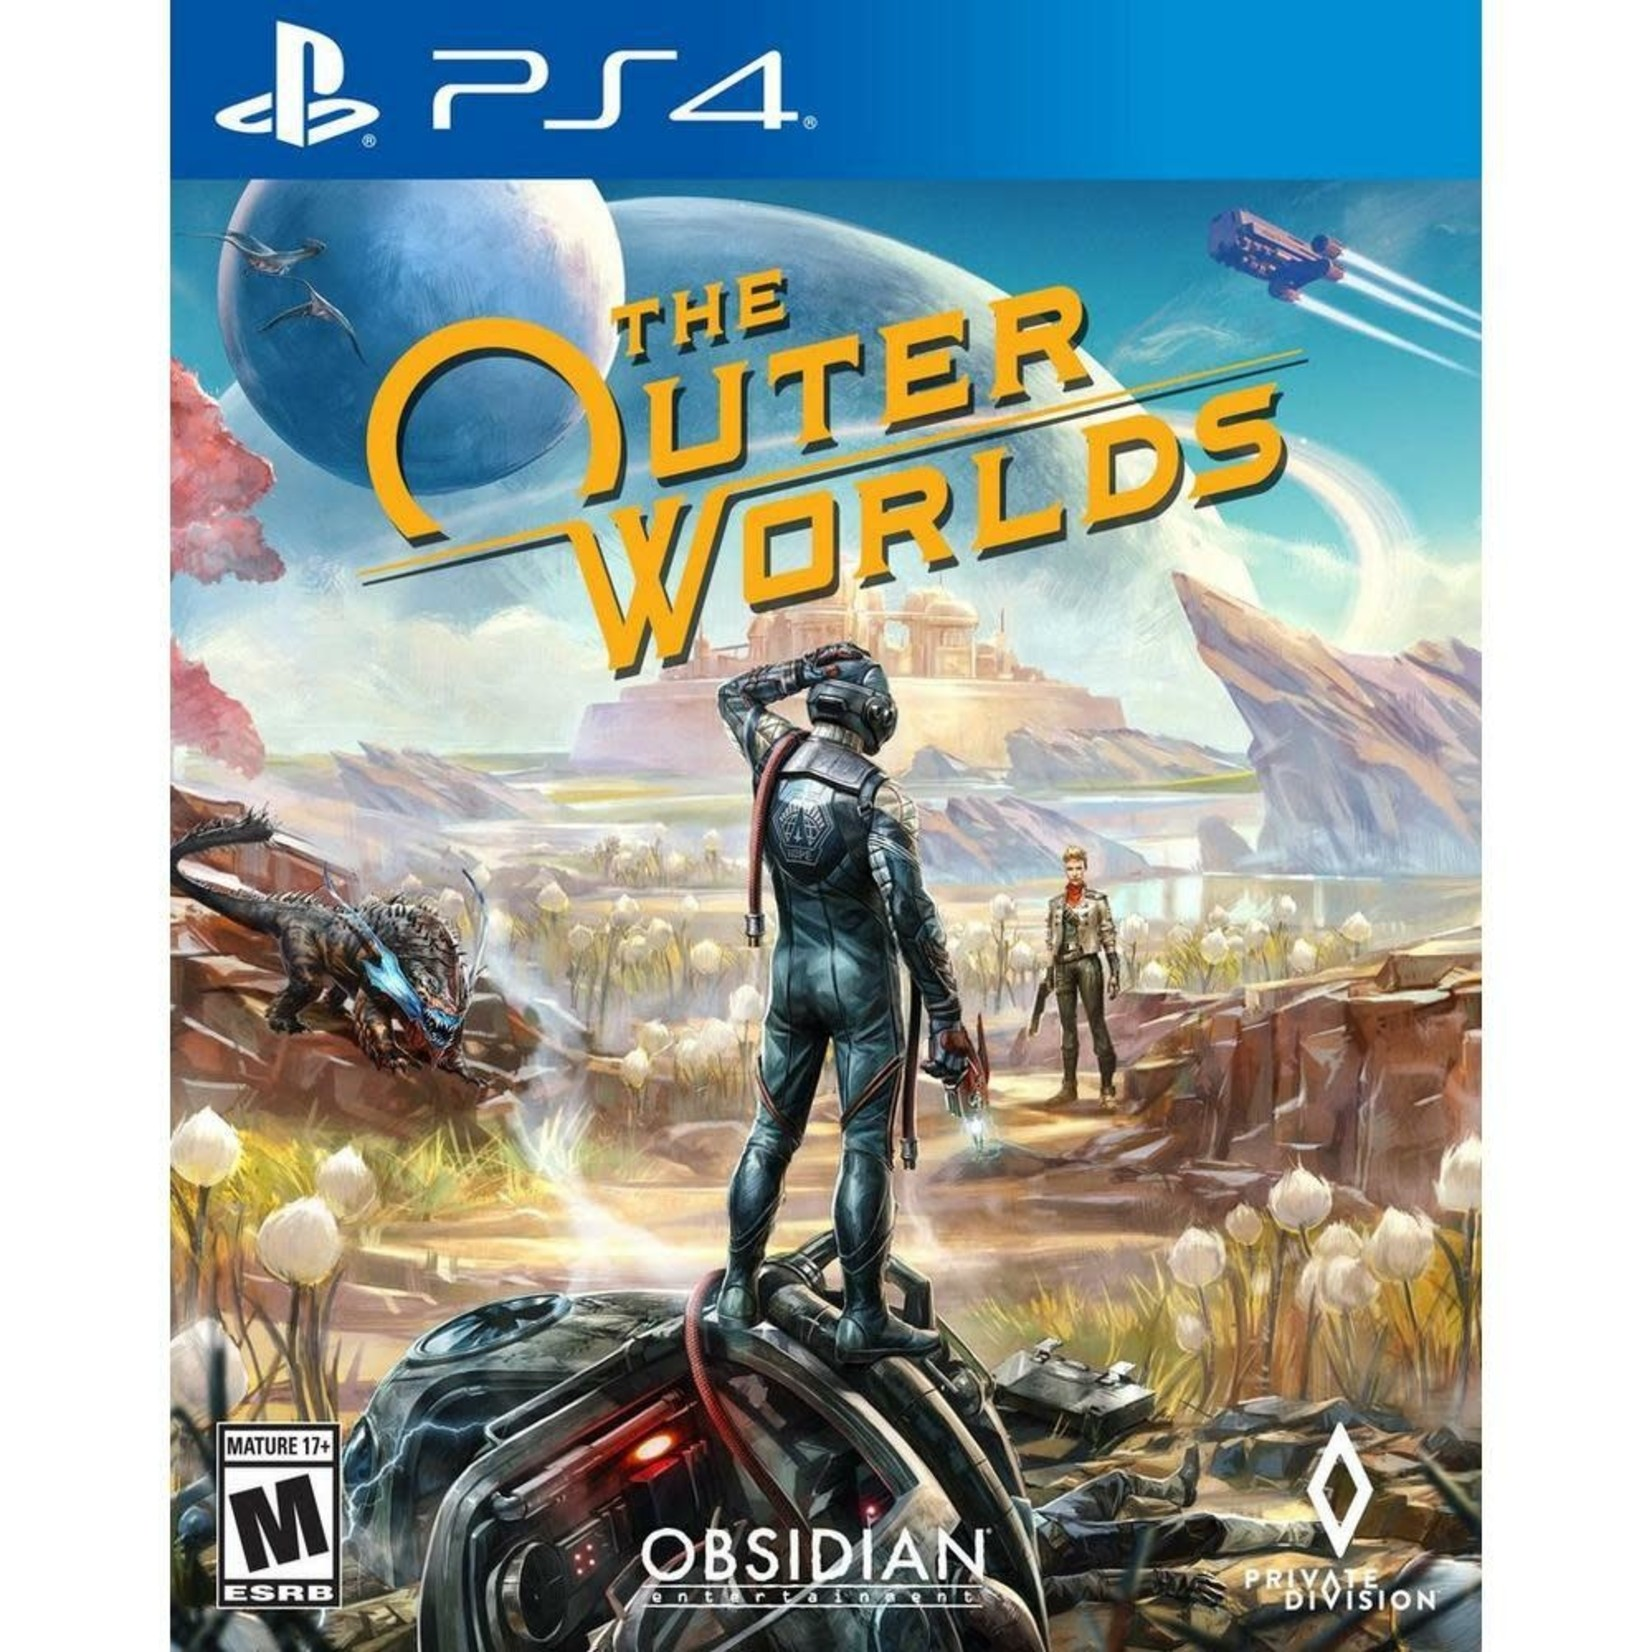 PS4-THE OUTER WORLDS